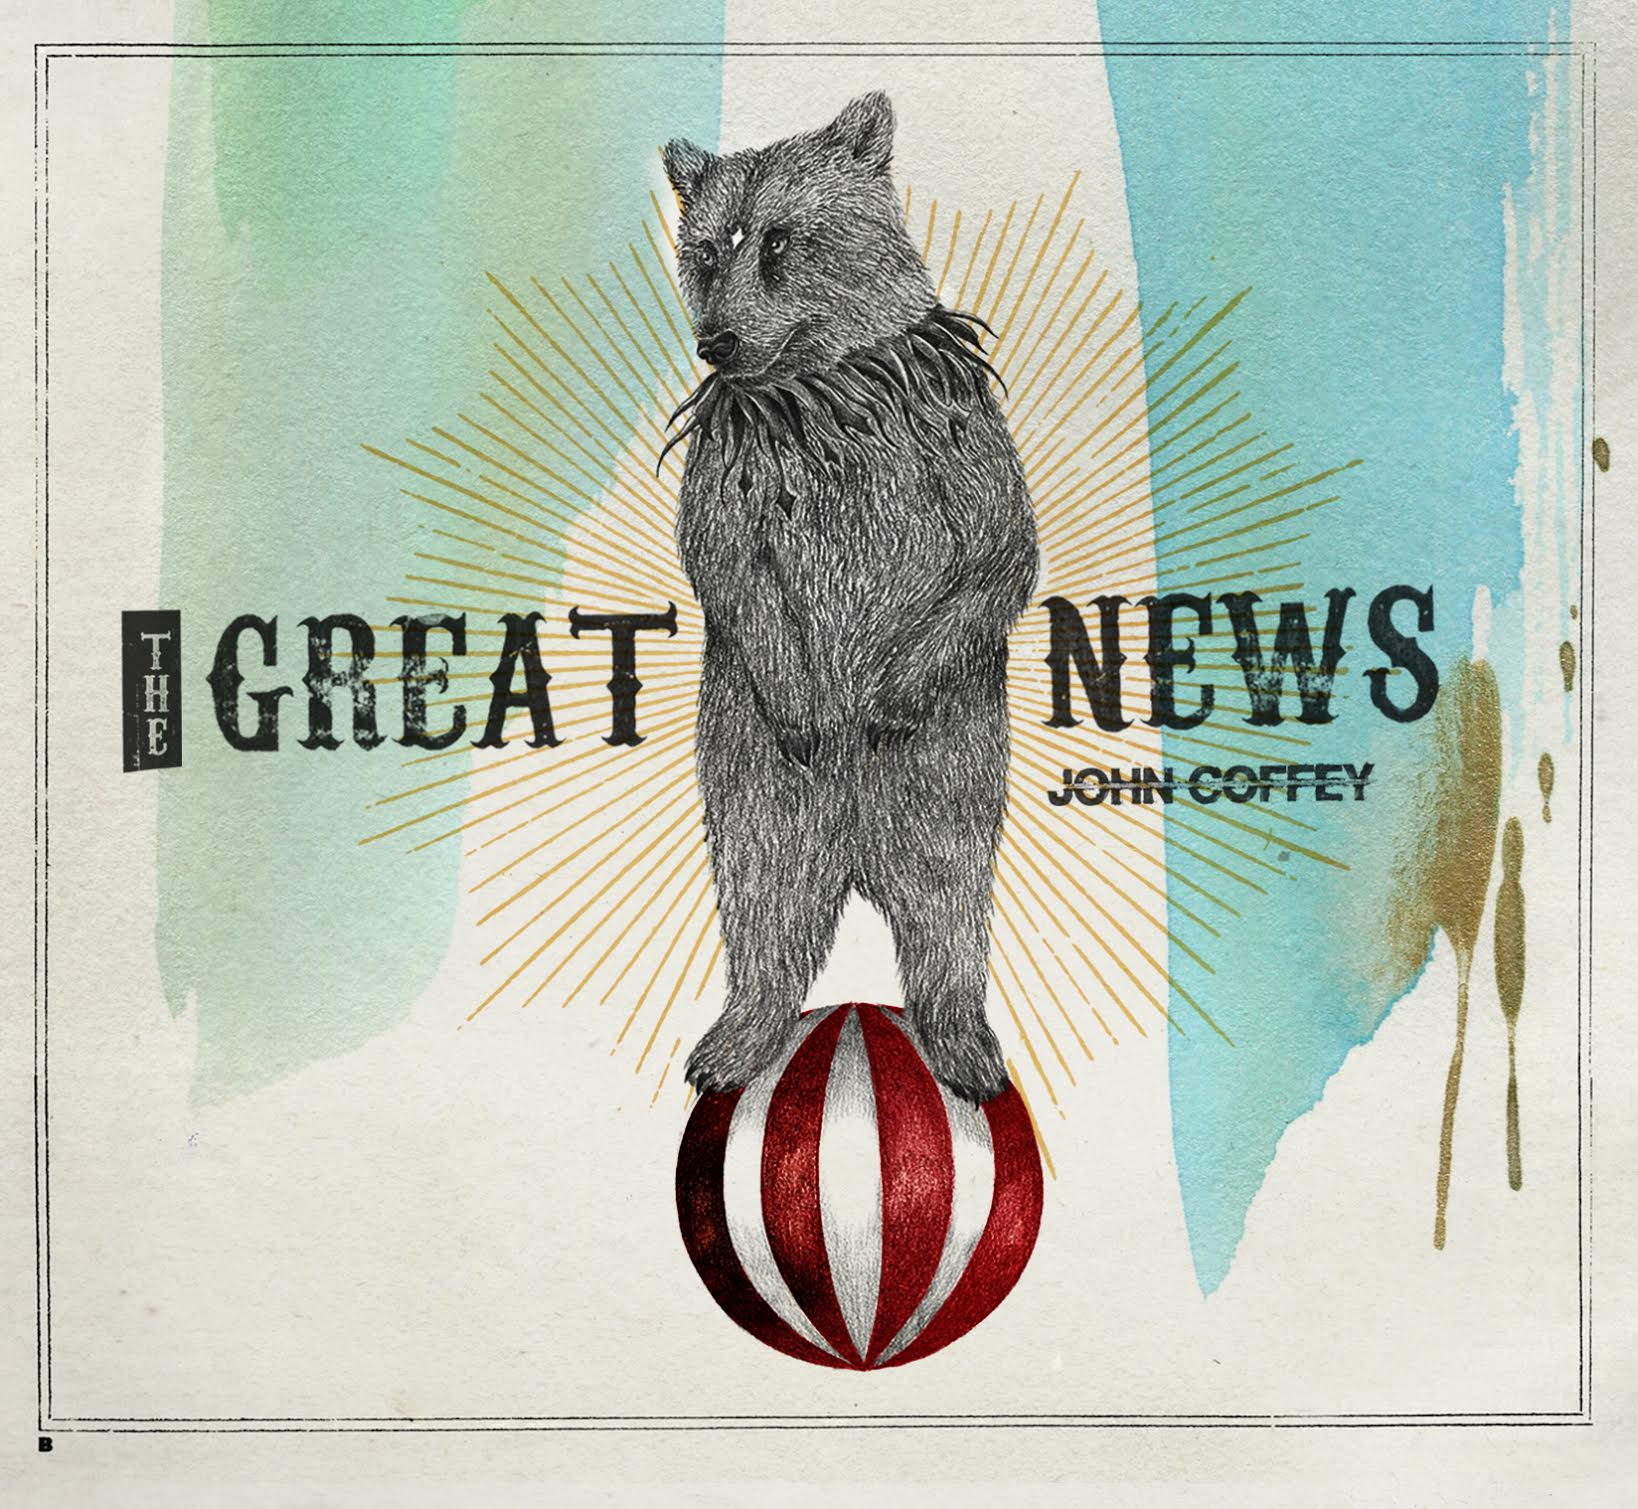 John Coffey | The Great News (album review) ★★★★☆